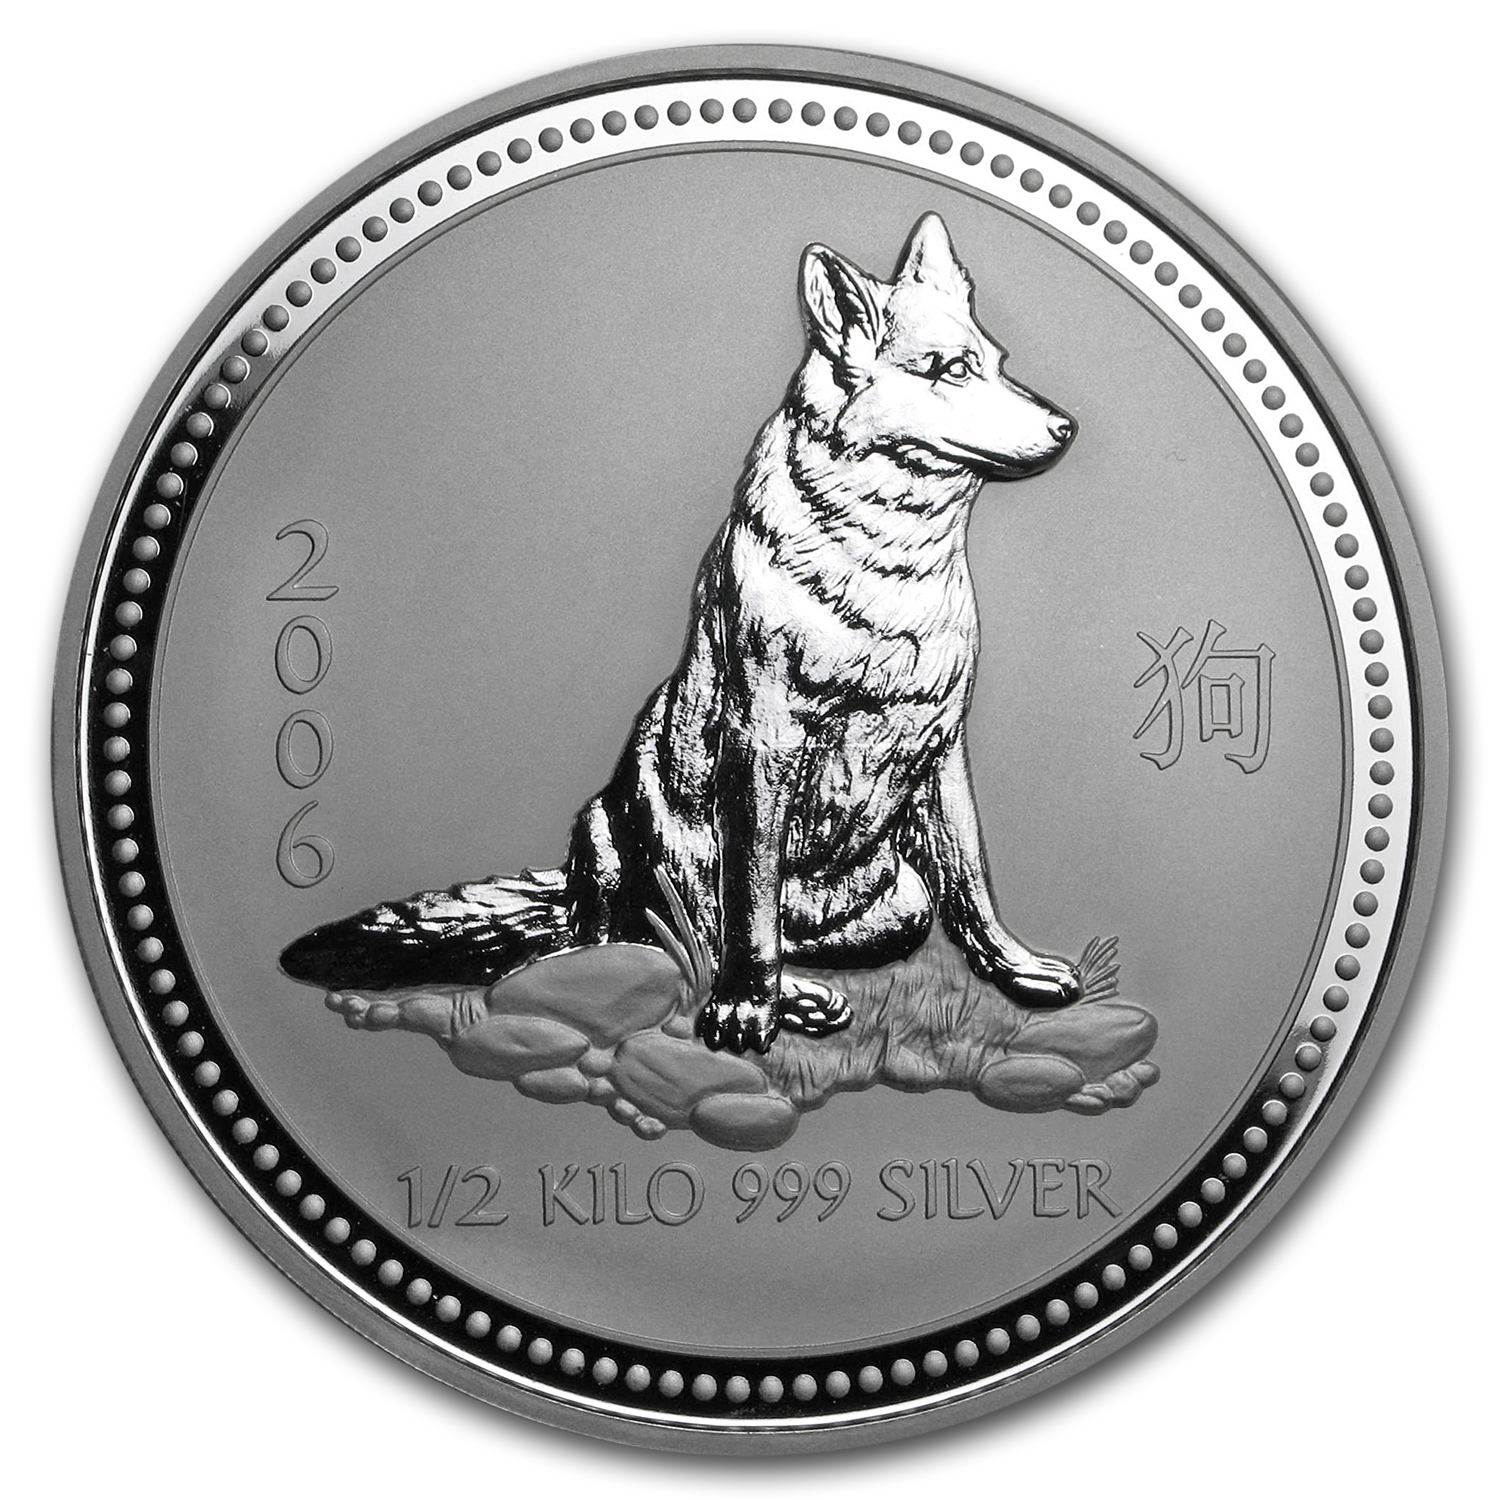 2006 Australia 1/2 kilo Silver Year of the Dog BU (16.075 oz)